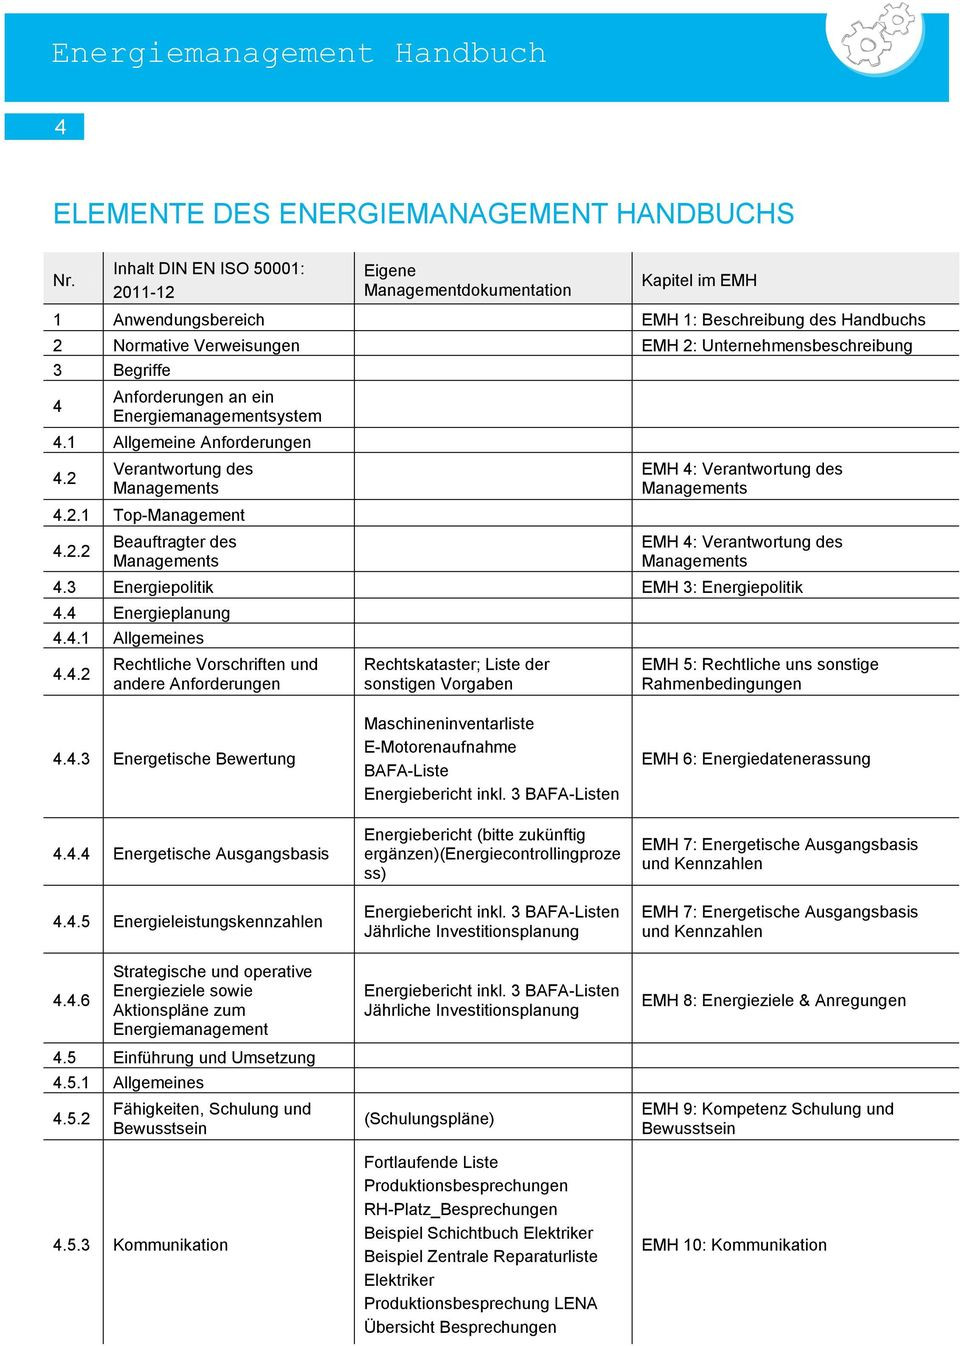 Begriffe 4 Anforderungen an ein Energiemanagementsystem 4.1 Allgemeine Anforderungen 4.2 Verantwortung des Managements 4.2.1 Top-Management 4.2.2 Beauftragter des Managements EMH 4: Verantwortung des Managements EMH 4: Verantwortung des Managements 4.